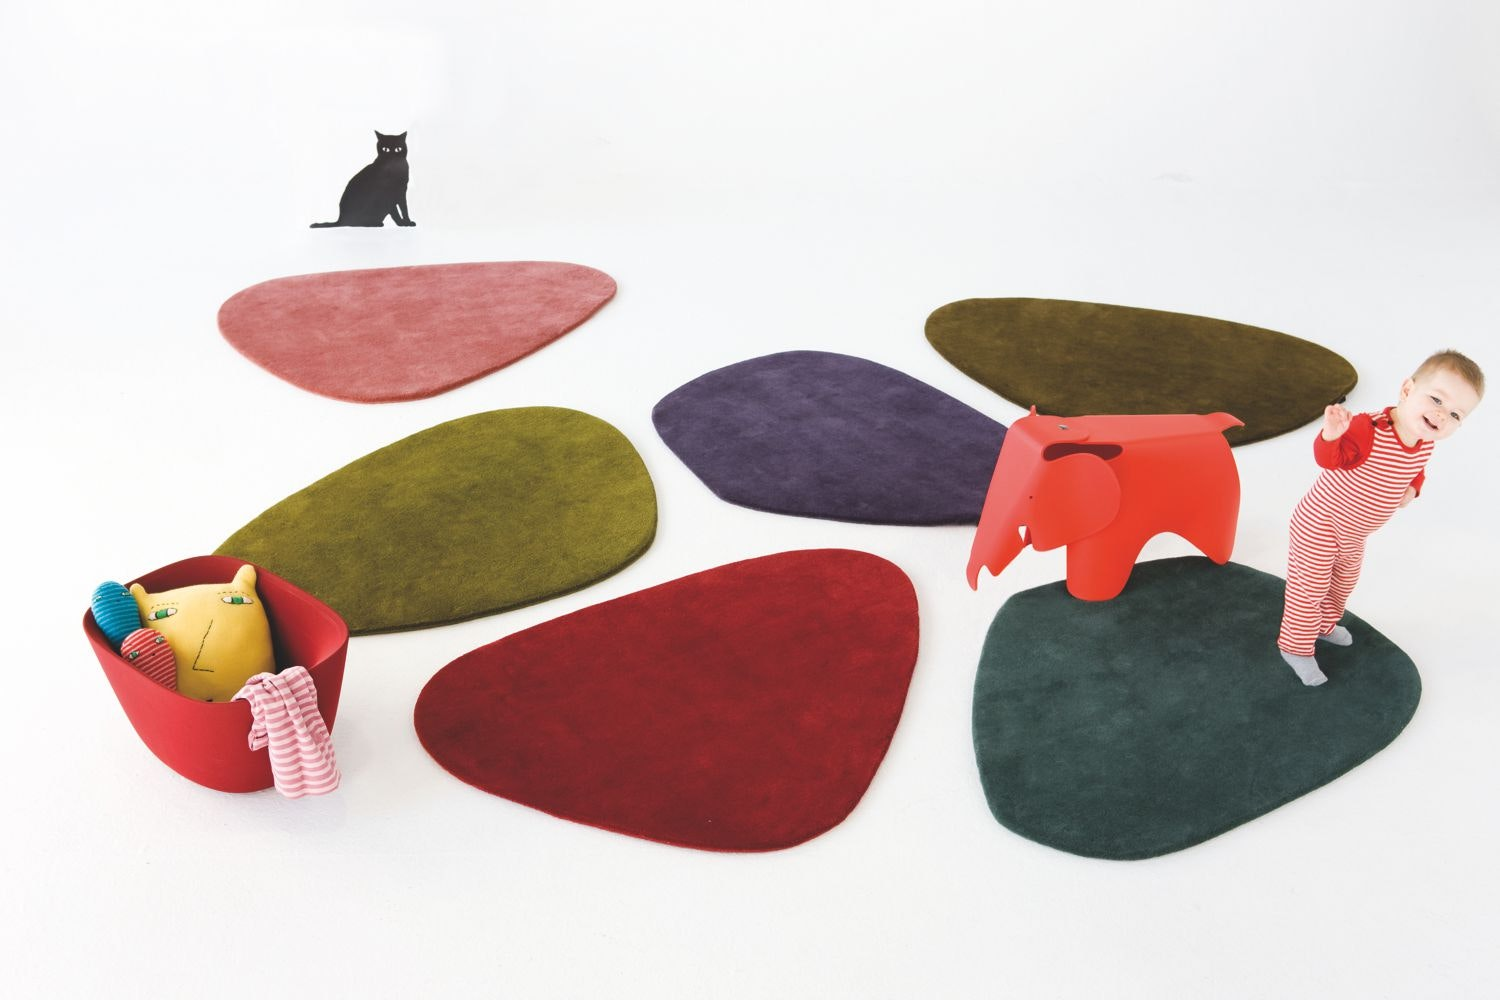 Calder by Nani Marquina for Nanimarquina